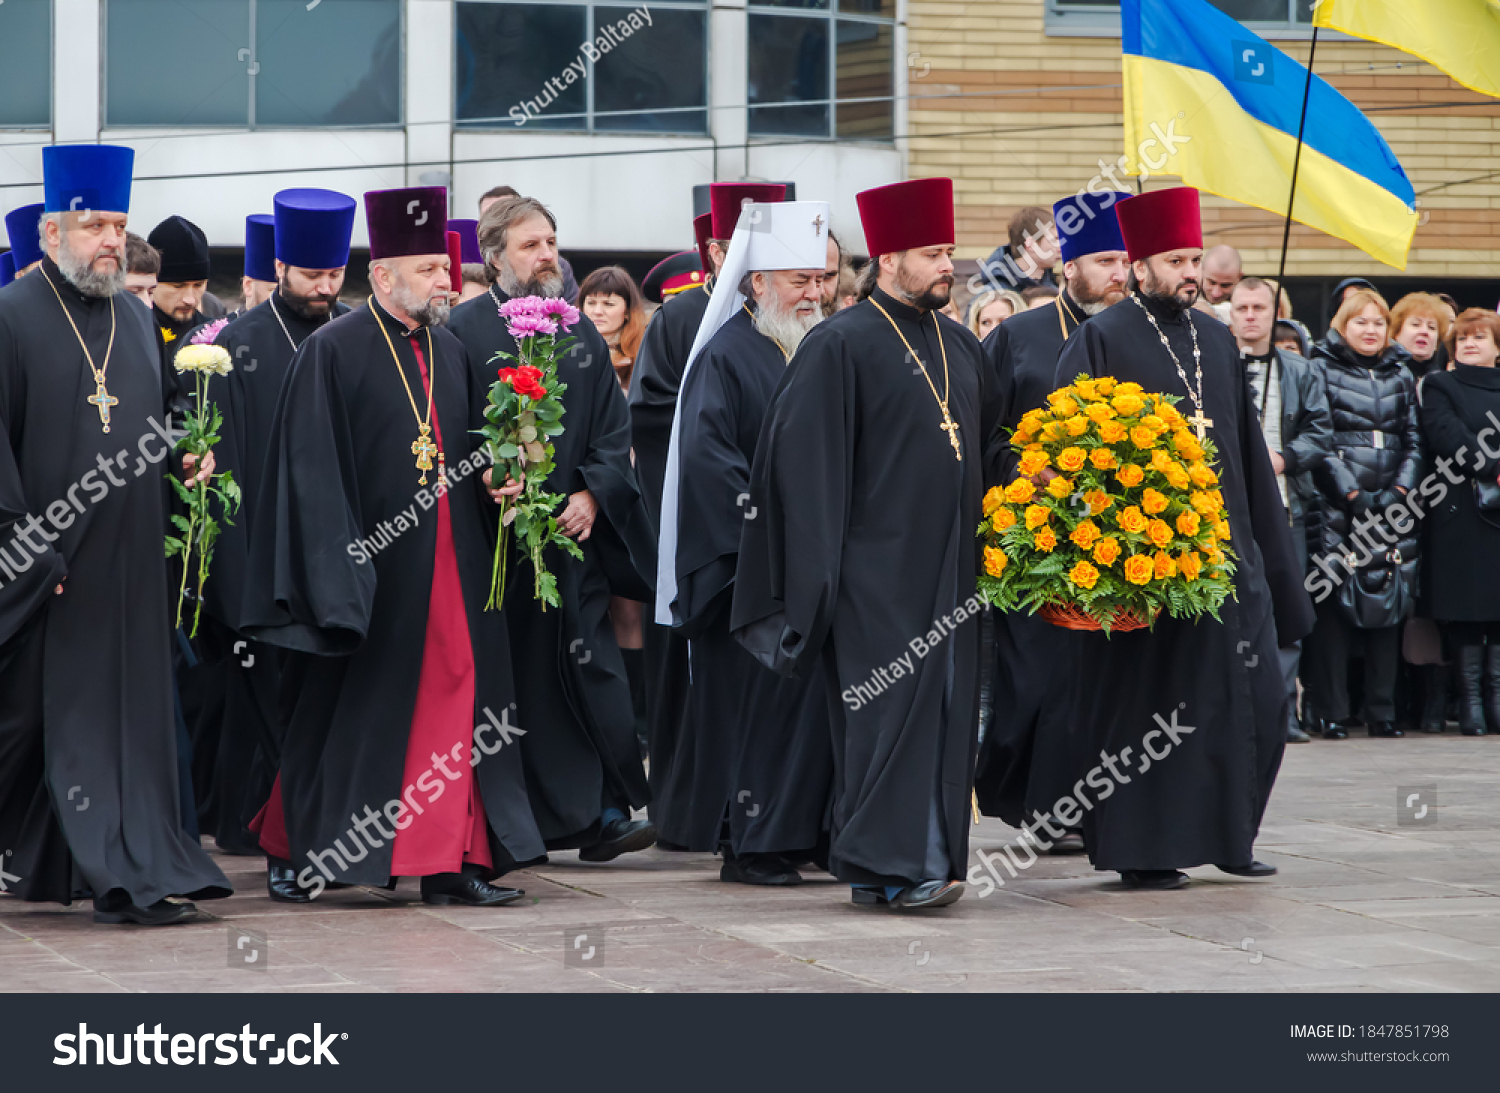 stock-photo-orthodox-priests-of-the-mosc